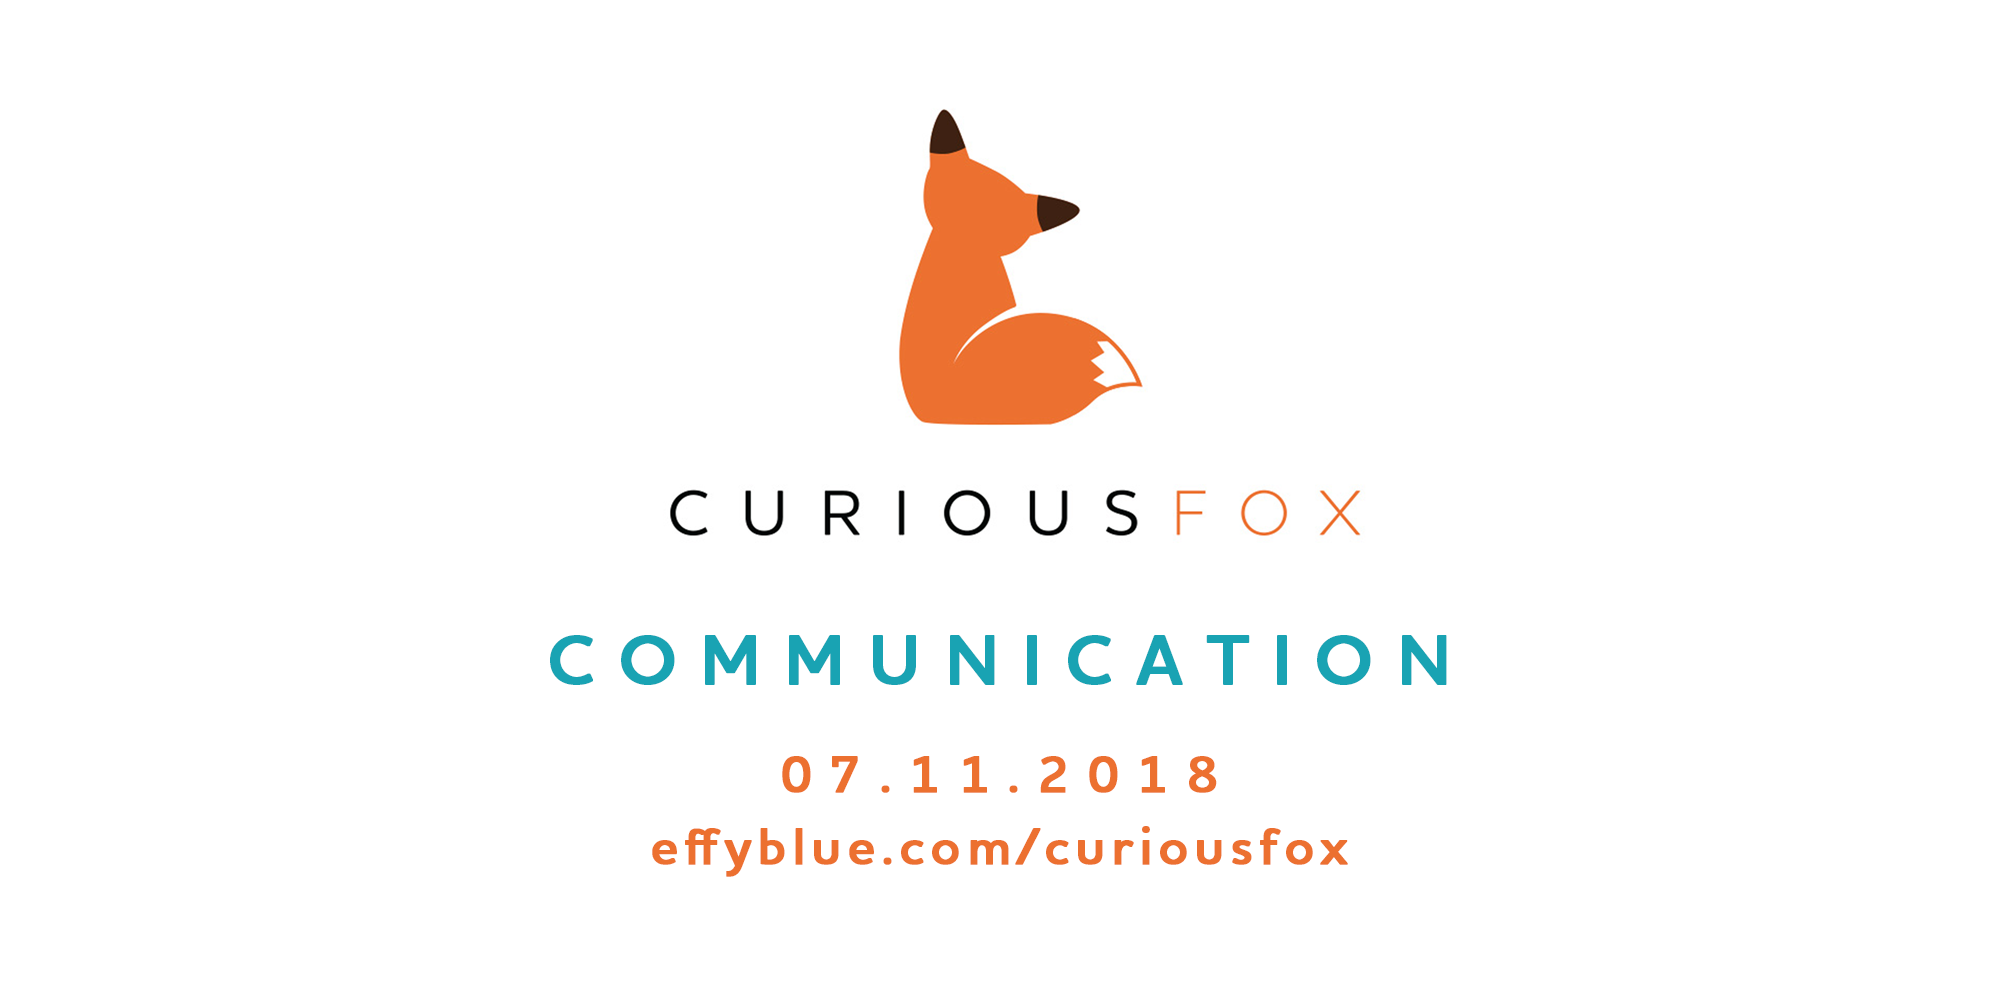 curious fox communication Jul 11